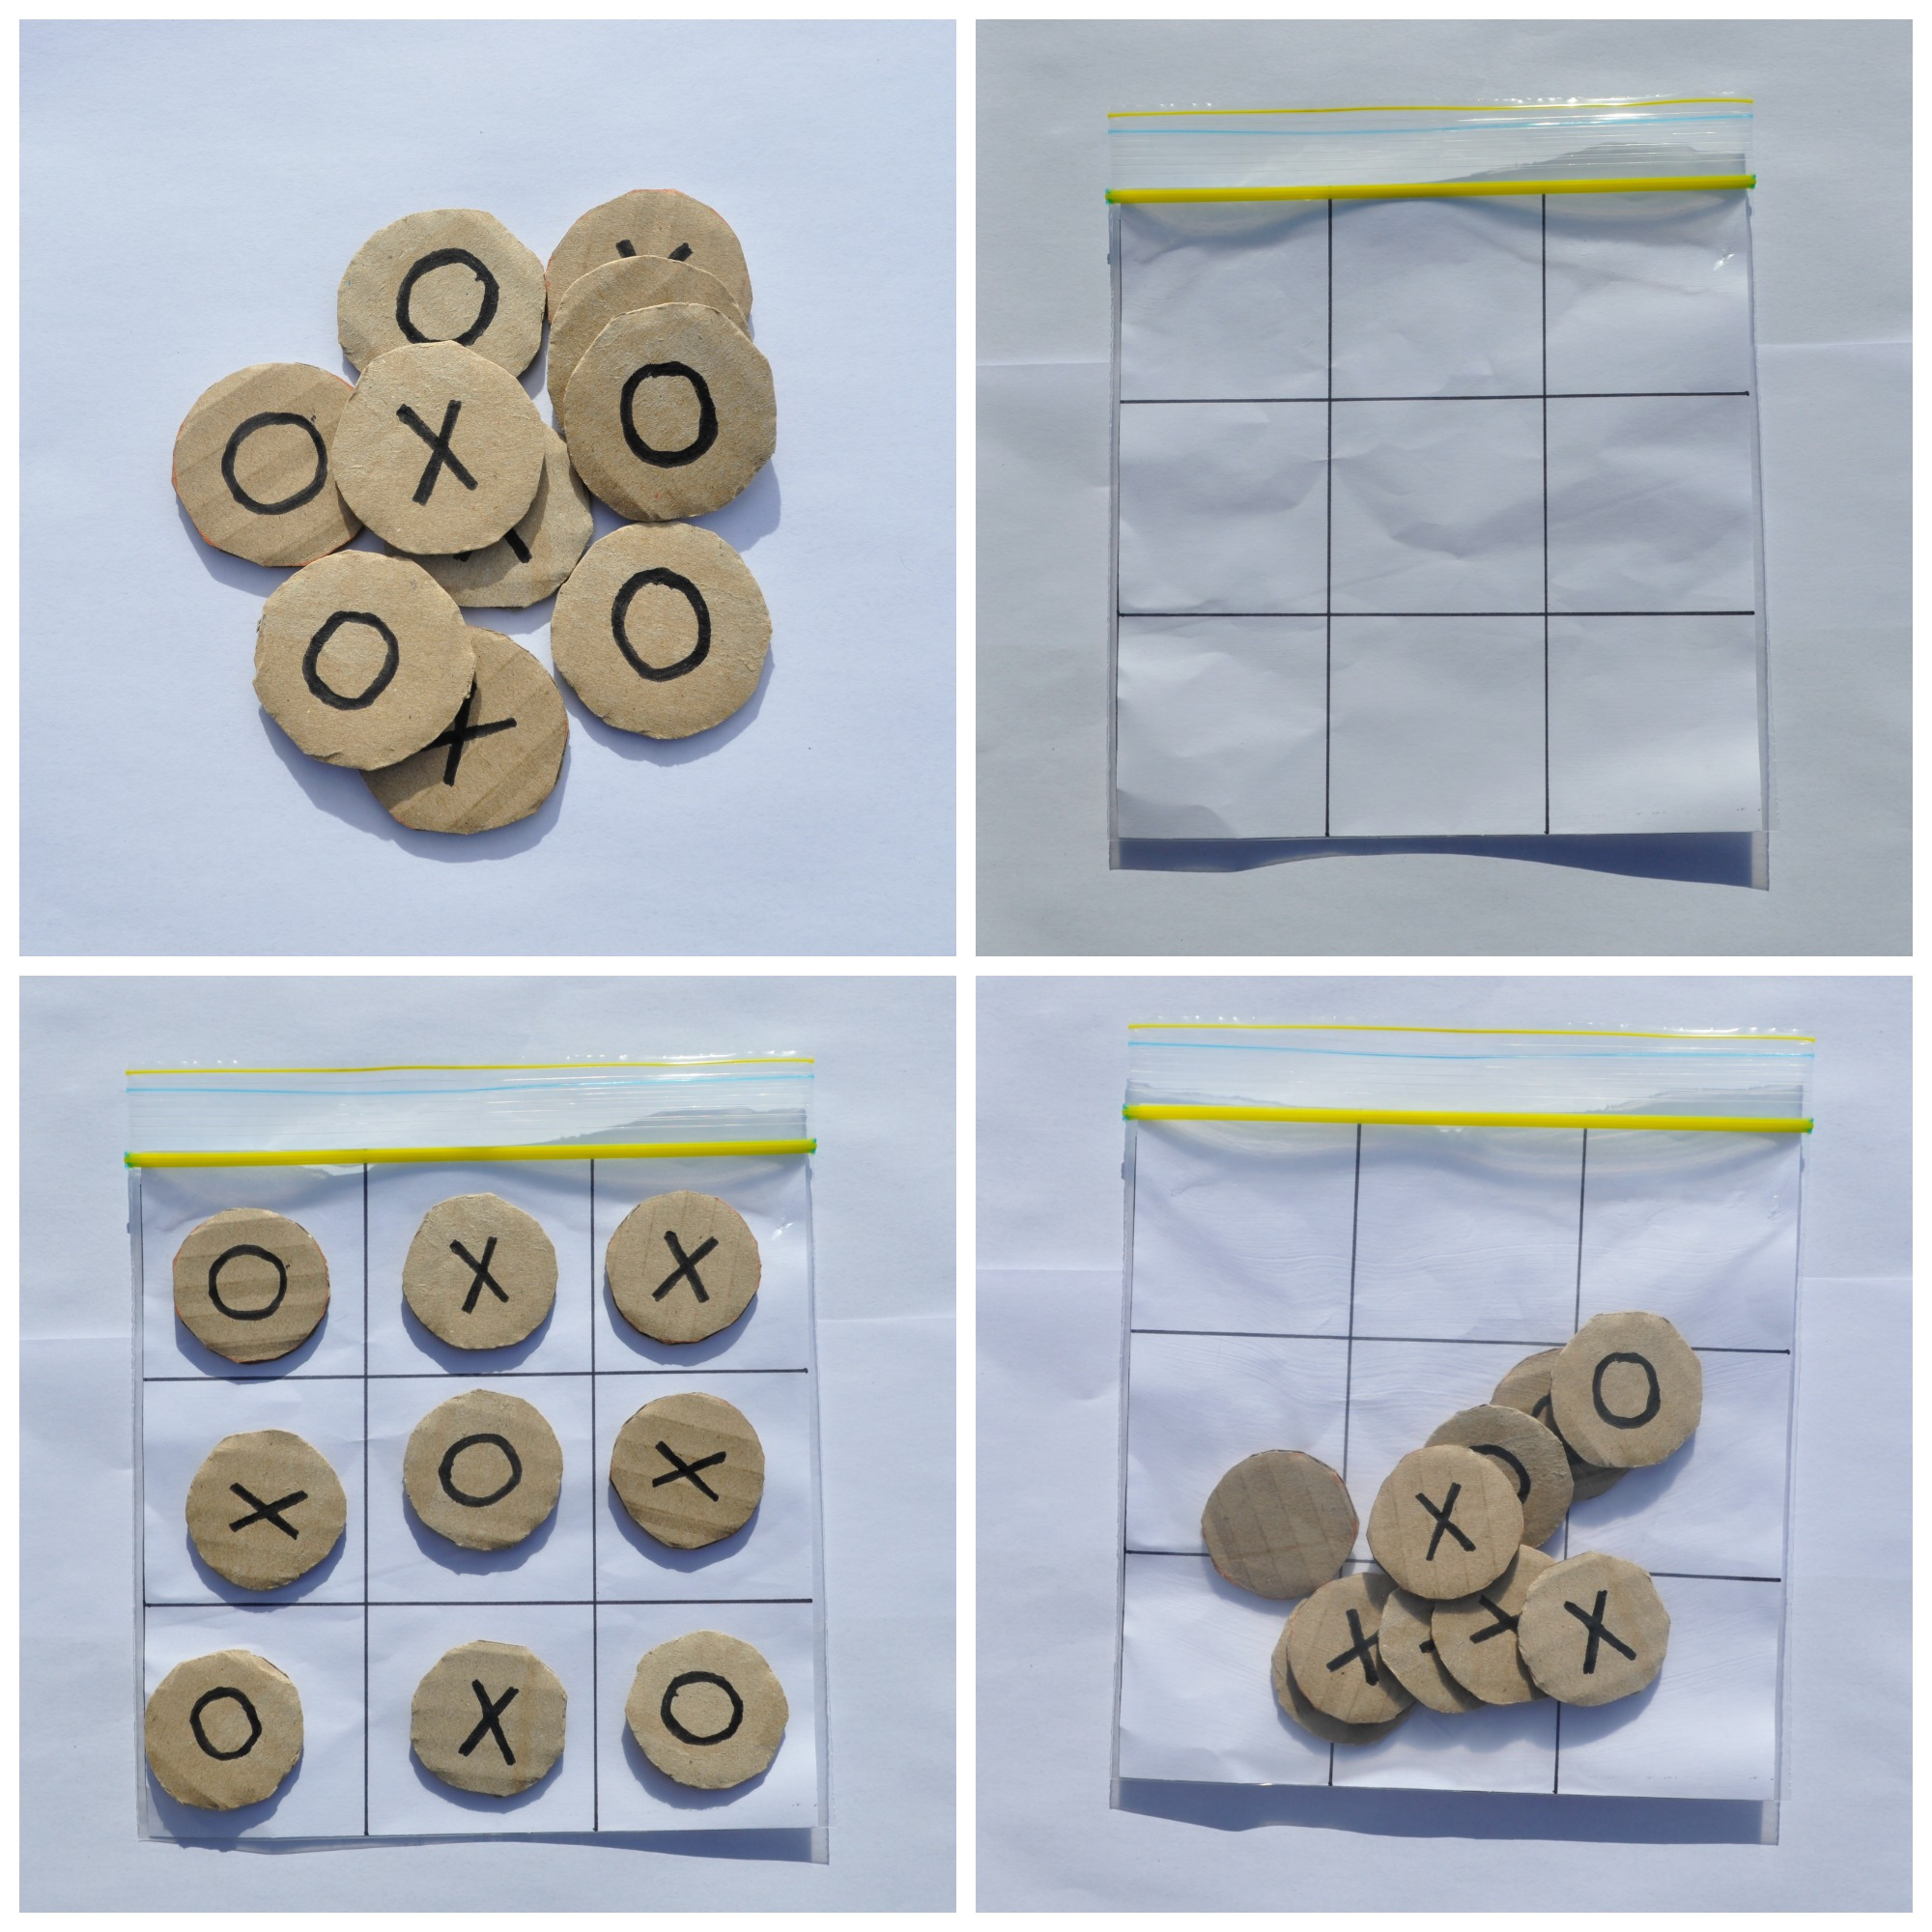 Use a zip lock bag to make a travel naughts and crosses board